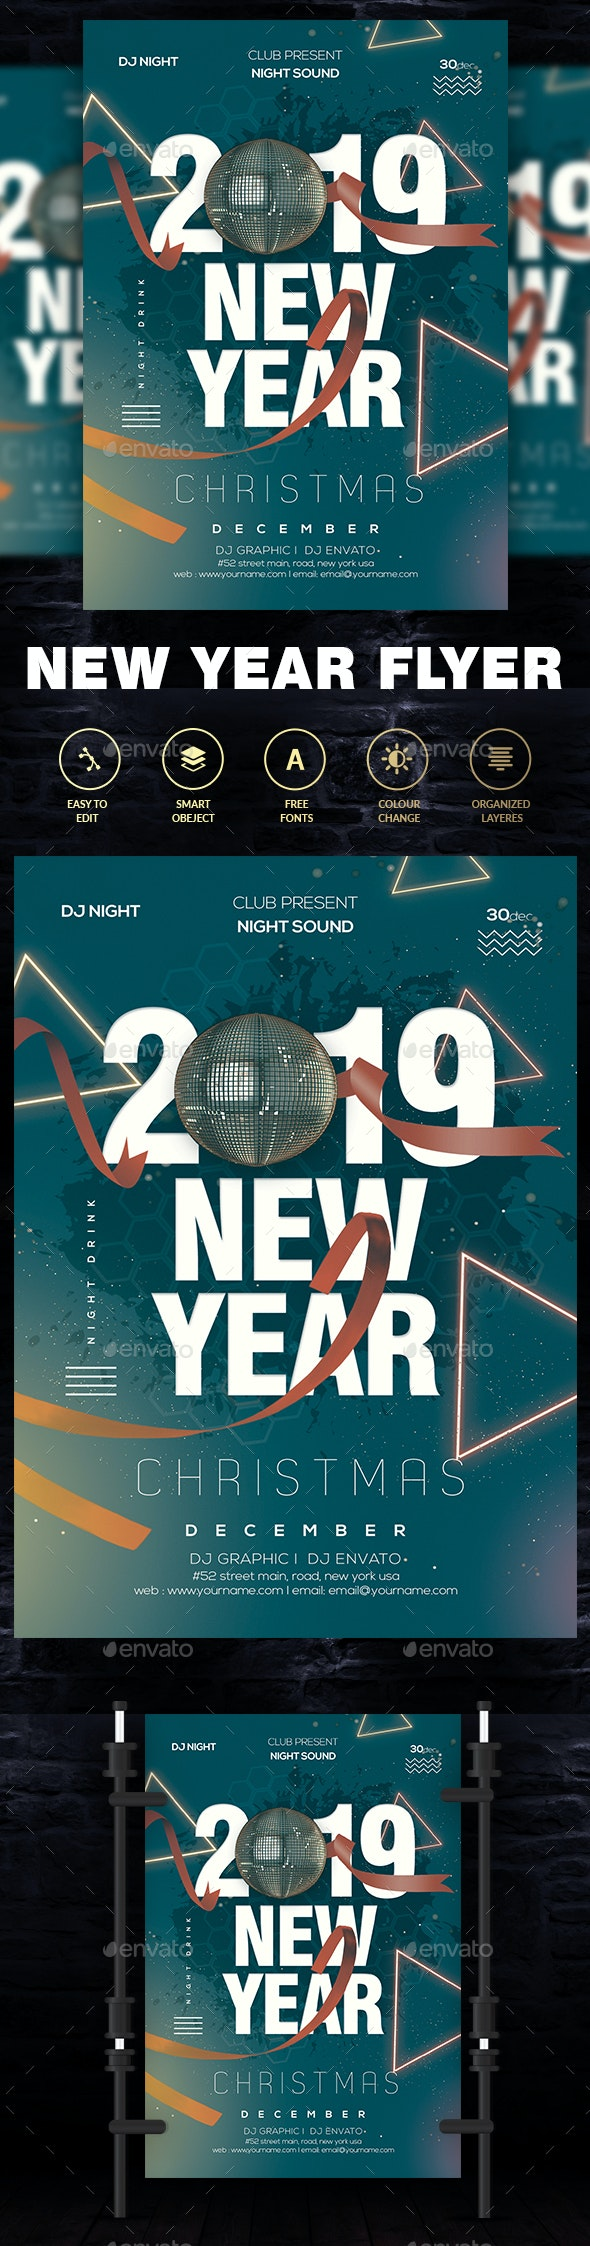 2019 New Year Party Flyer - Clubs & Parties Events